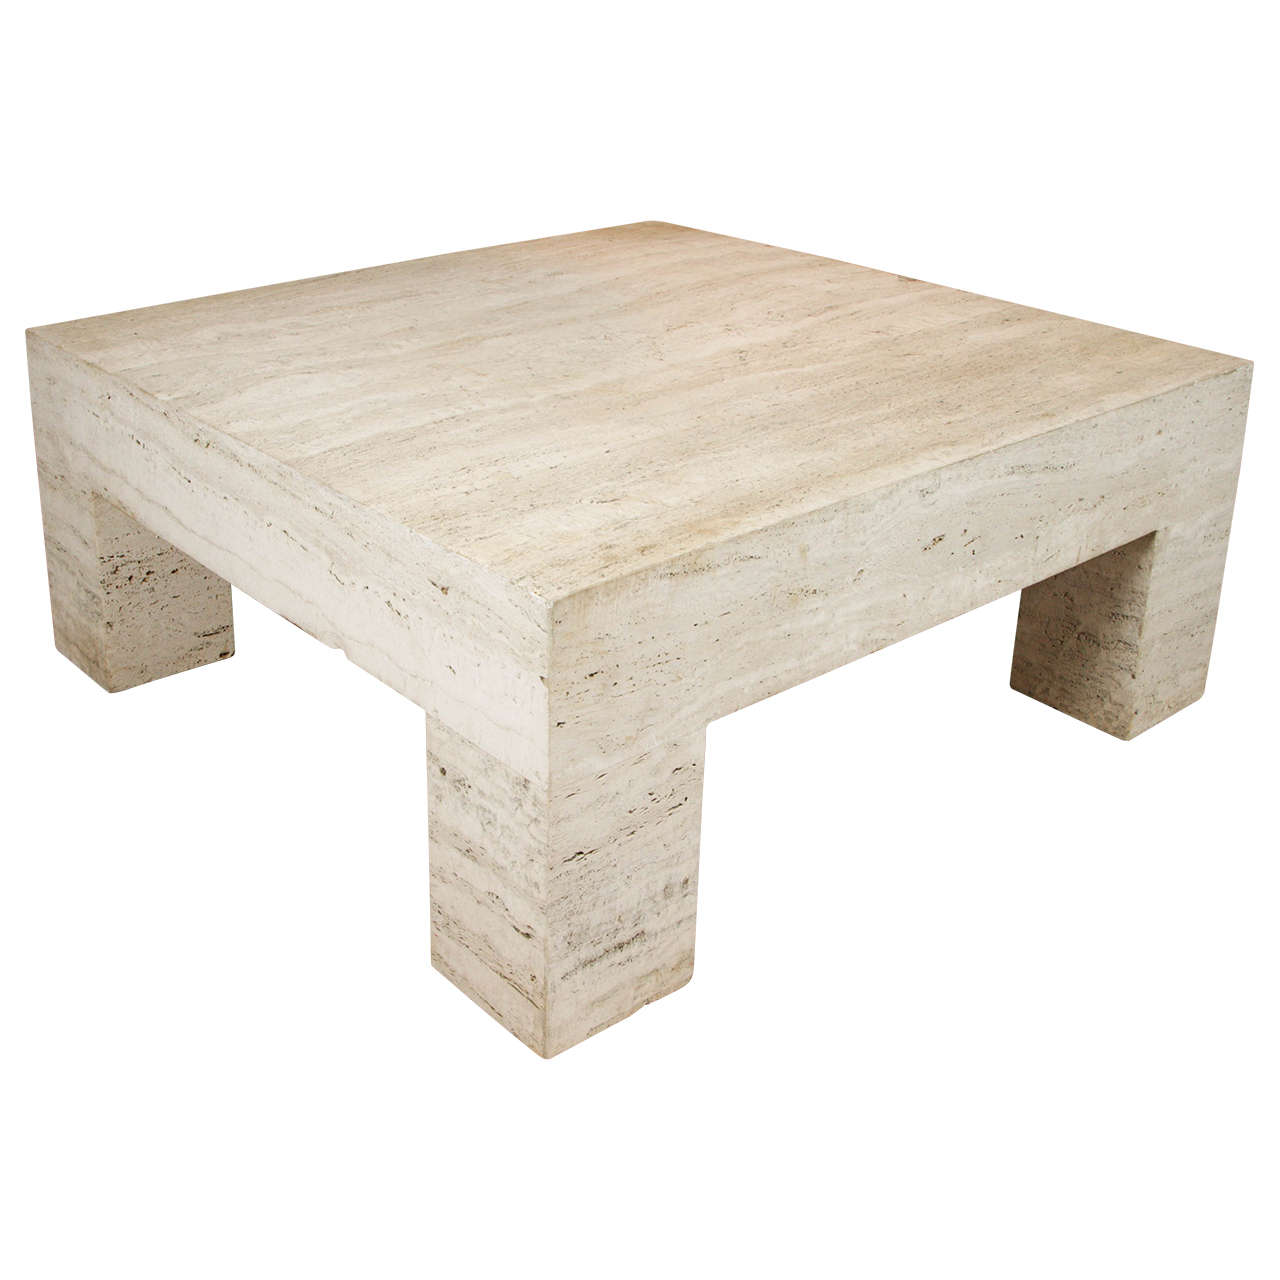 Modern Honed Monolithic Travertine Coffee Table At 1stdibs